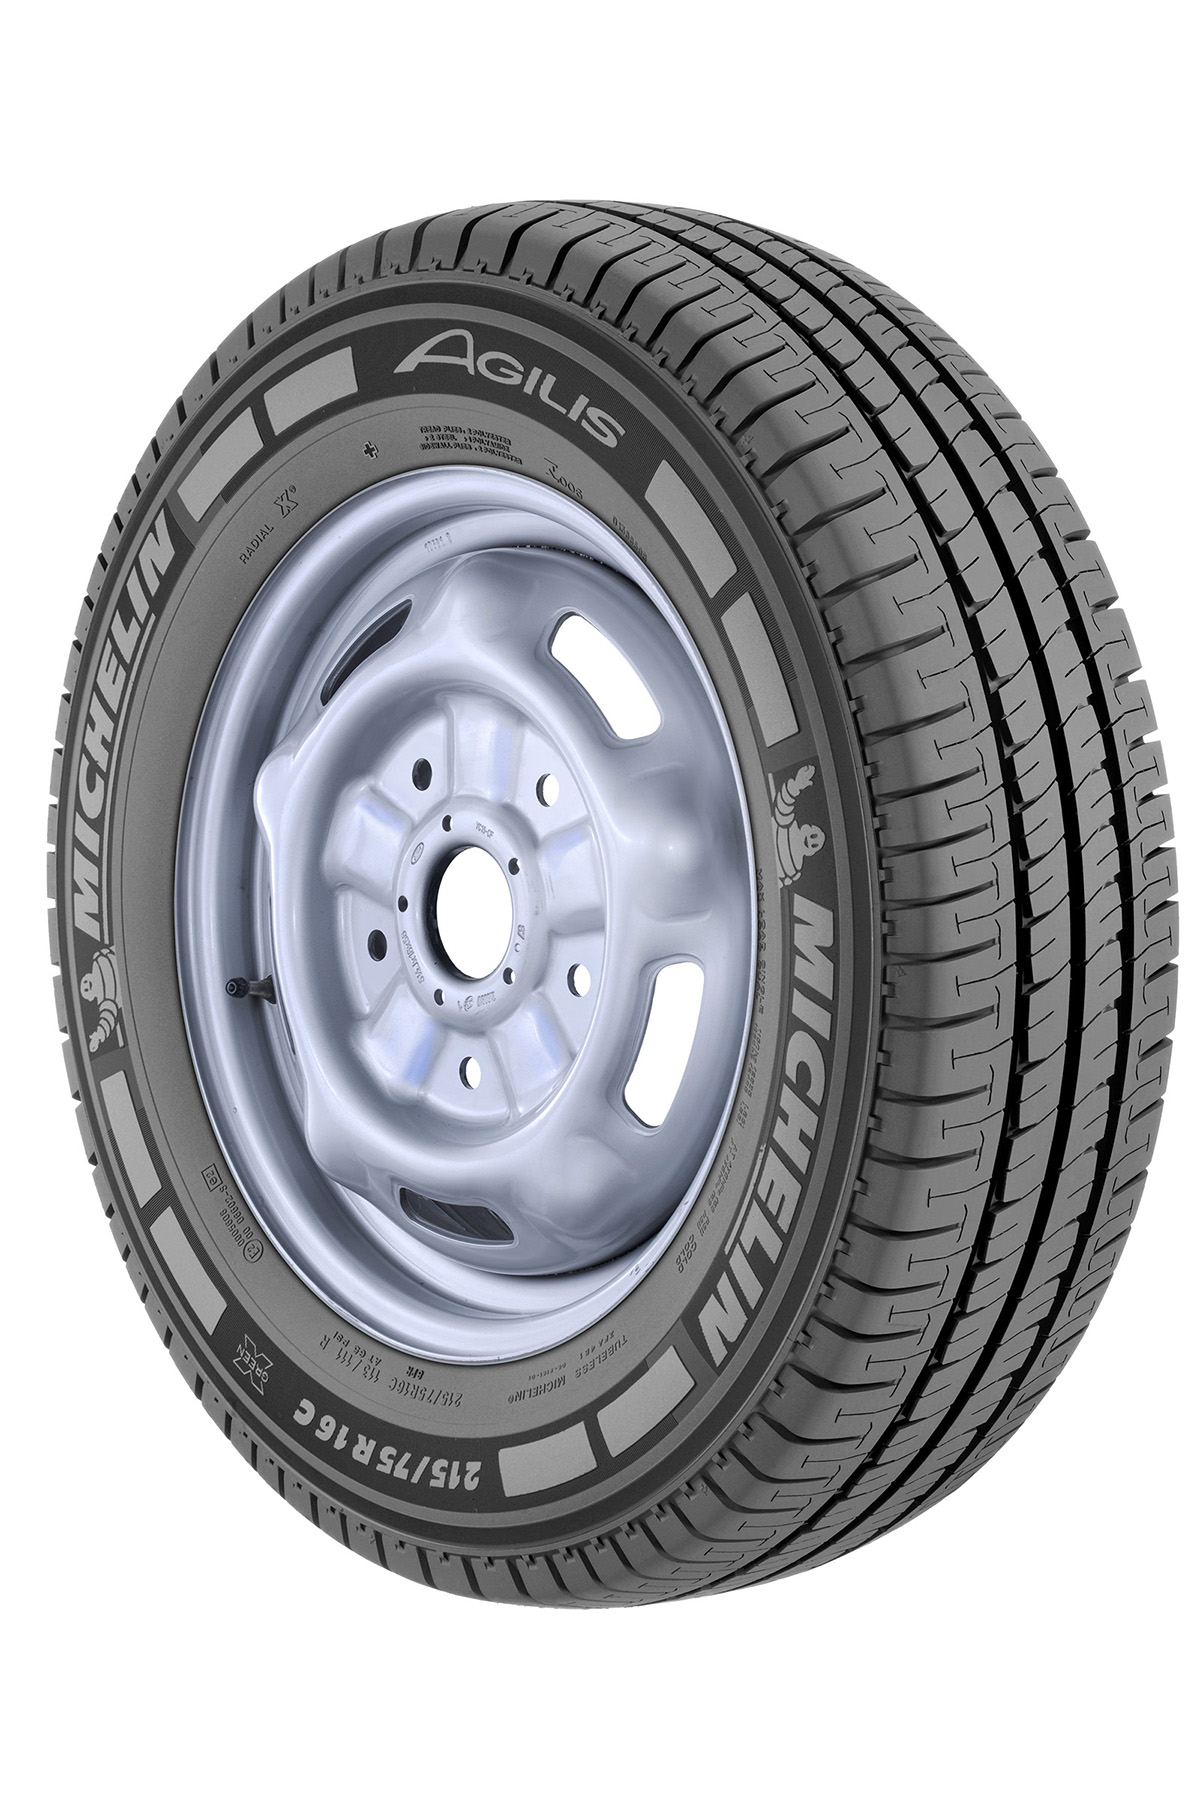 Llantas 215/75 R16  AGILIS + MICHELIN Origen china